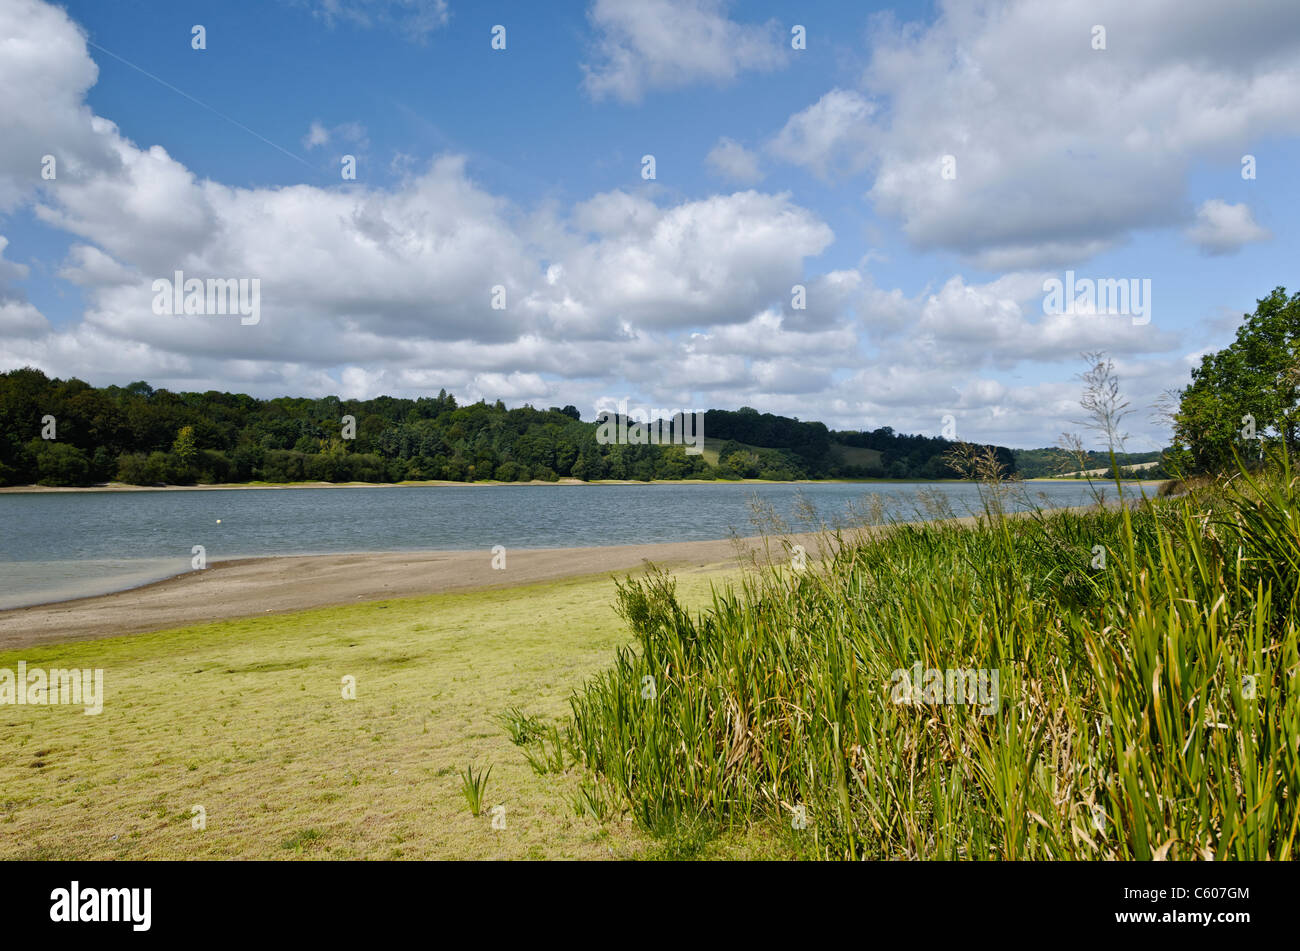 Receding water levels in Ardingly Reservoir - Stock Image